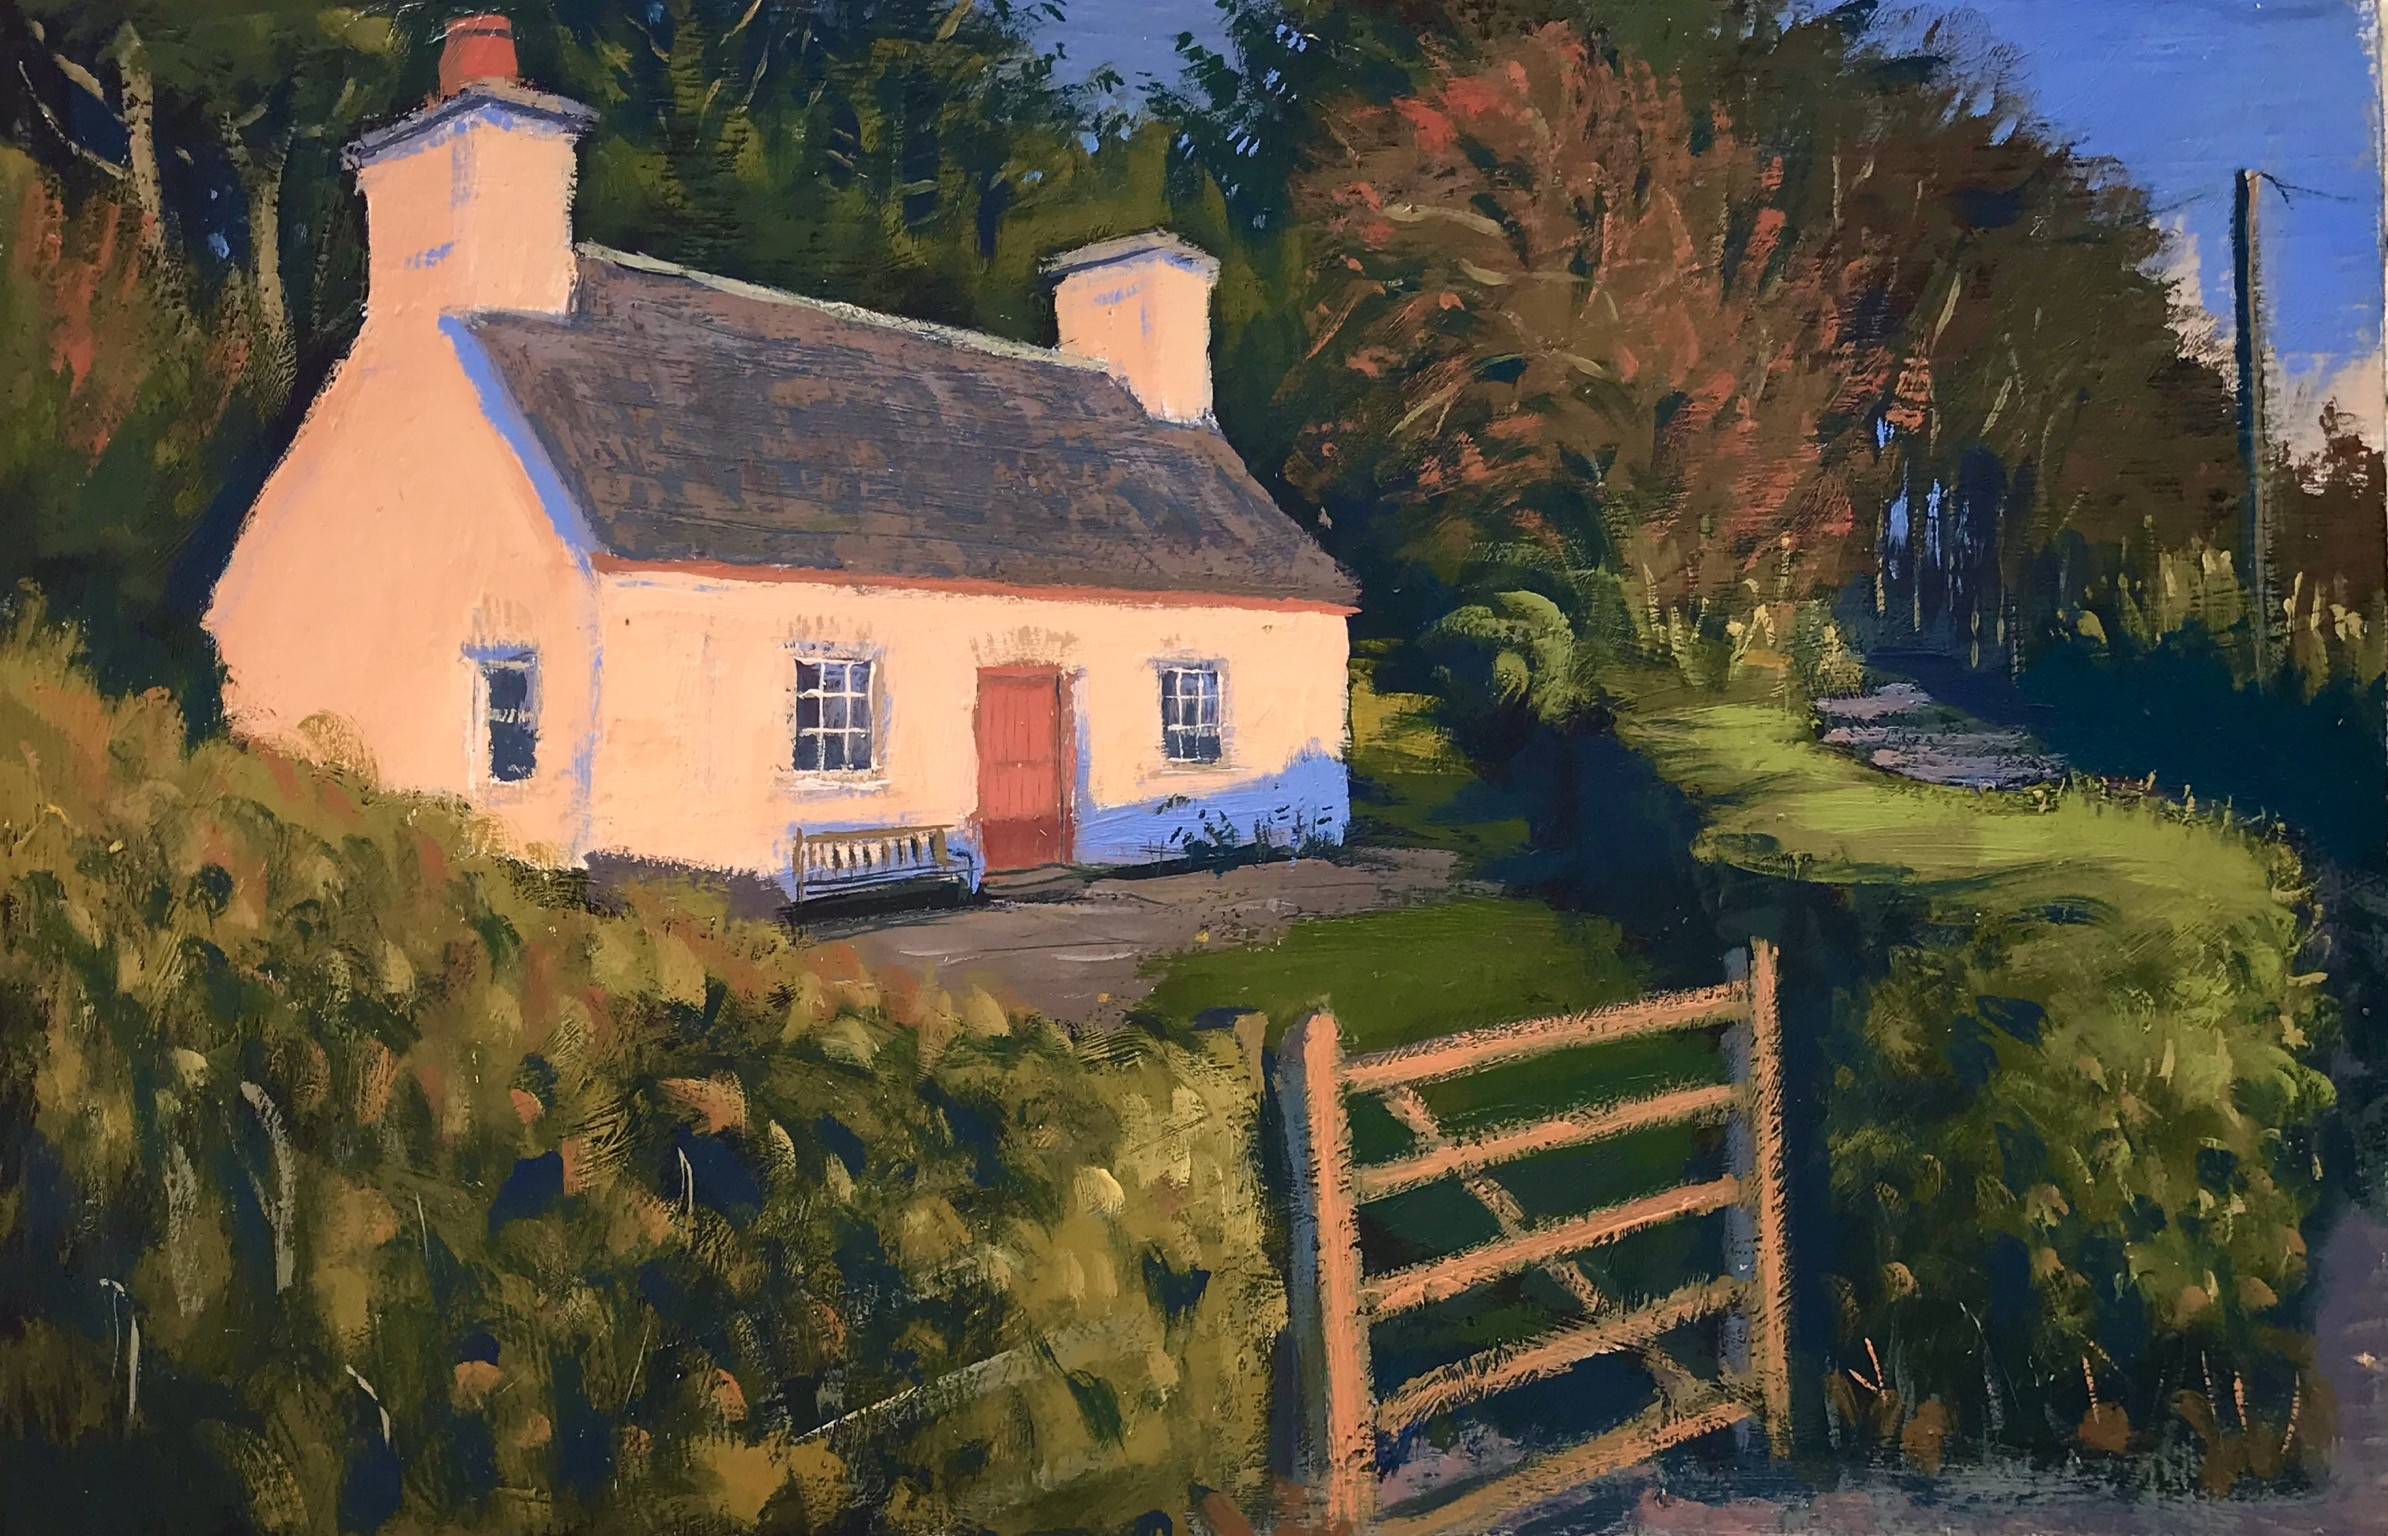 Paxton's Tower Lodge   8x12 ins   Oil on board